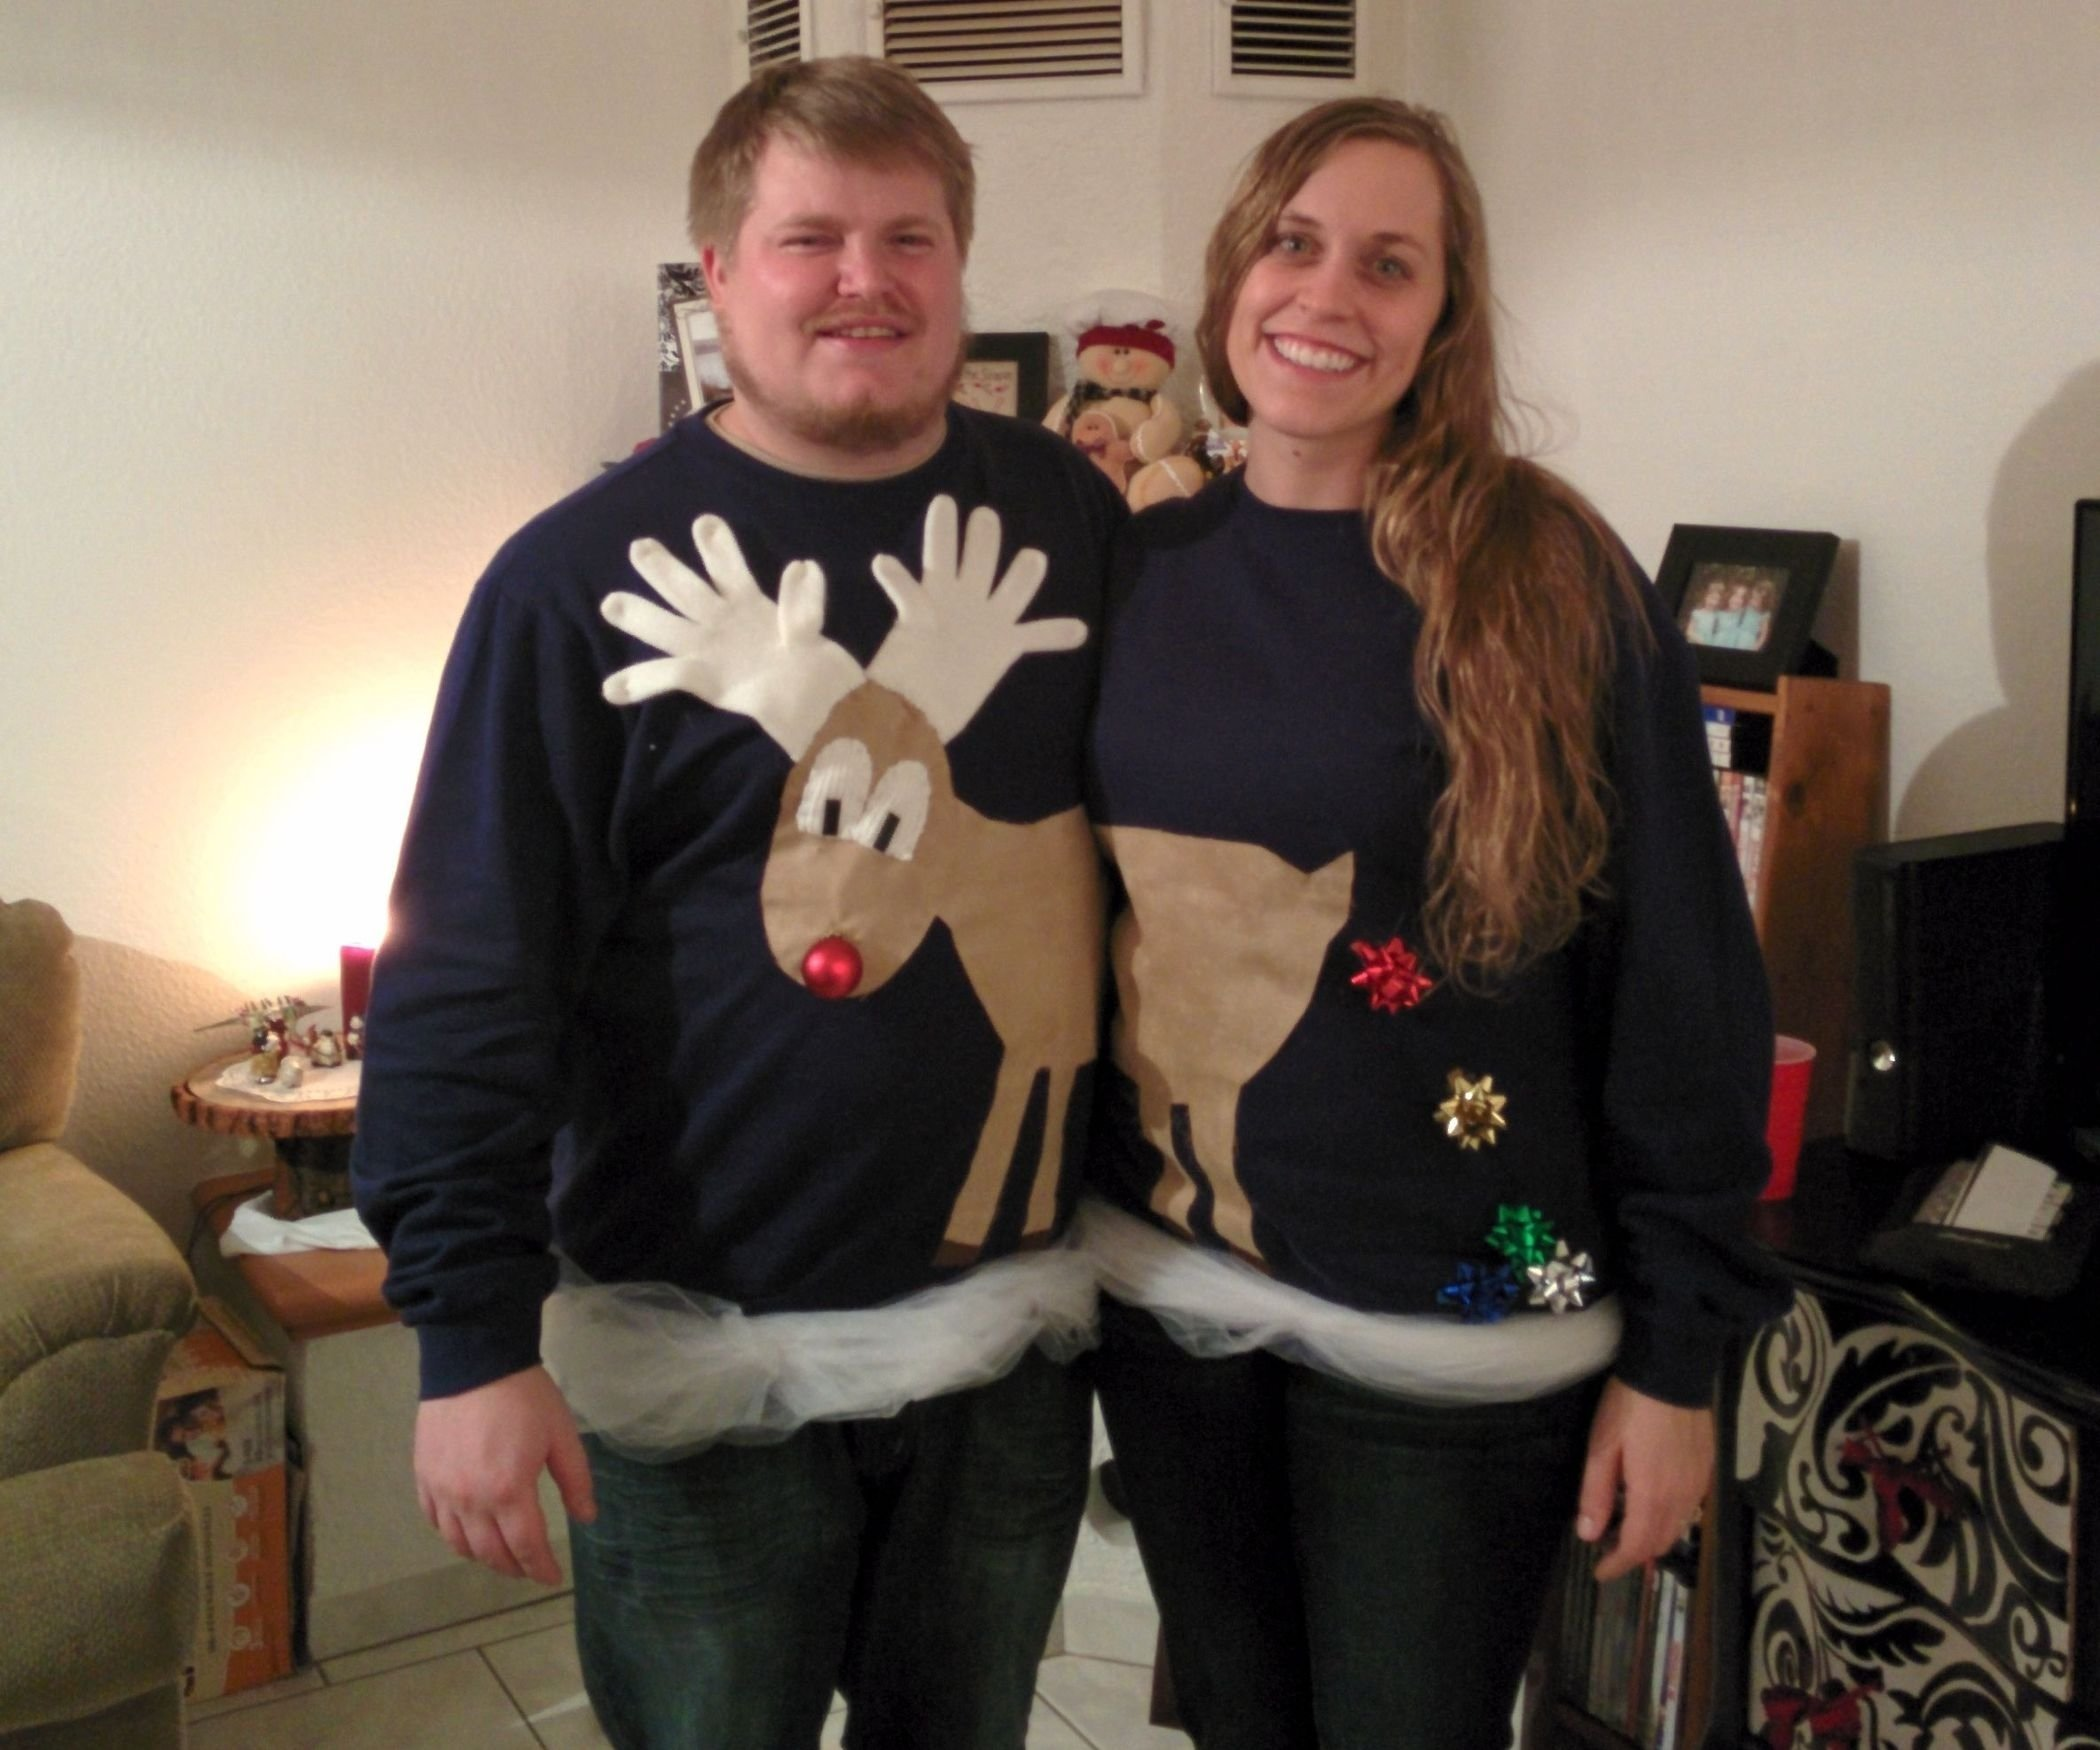 10 Awesome Ugly Christmas Sweater Ideas For Couples reindeer couples ugly sweater 1 2020